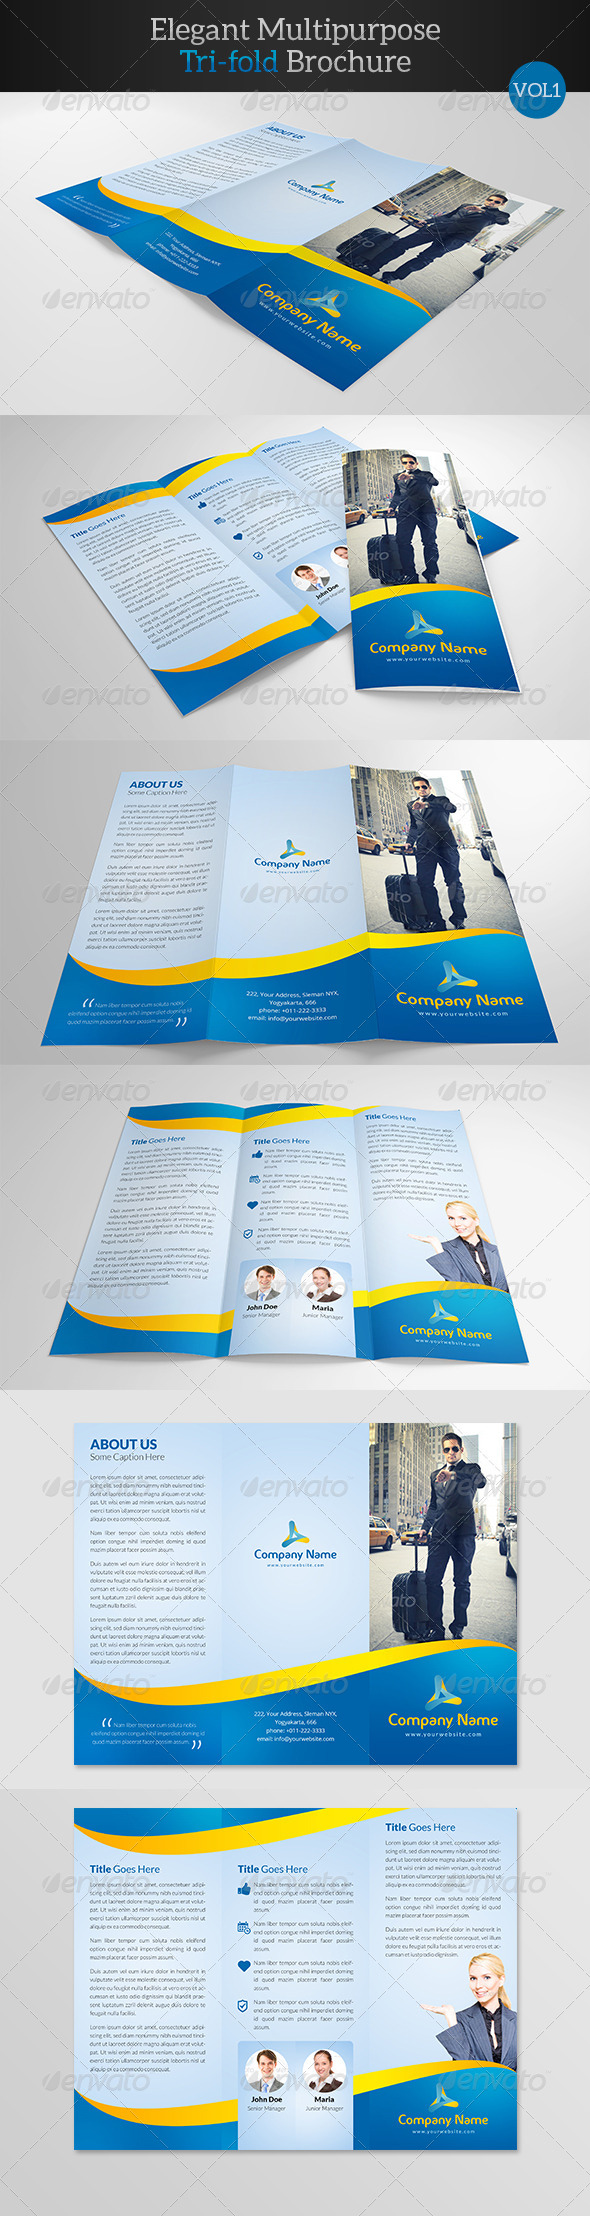 GraphicRiver Elegant Multipurpose Trifold Brochure 7885505